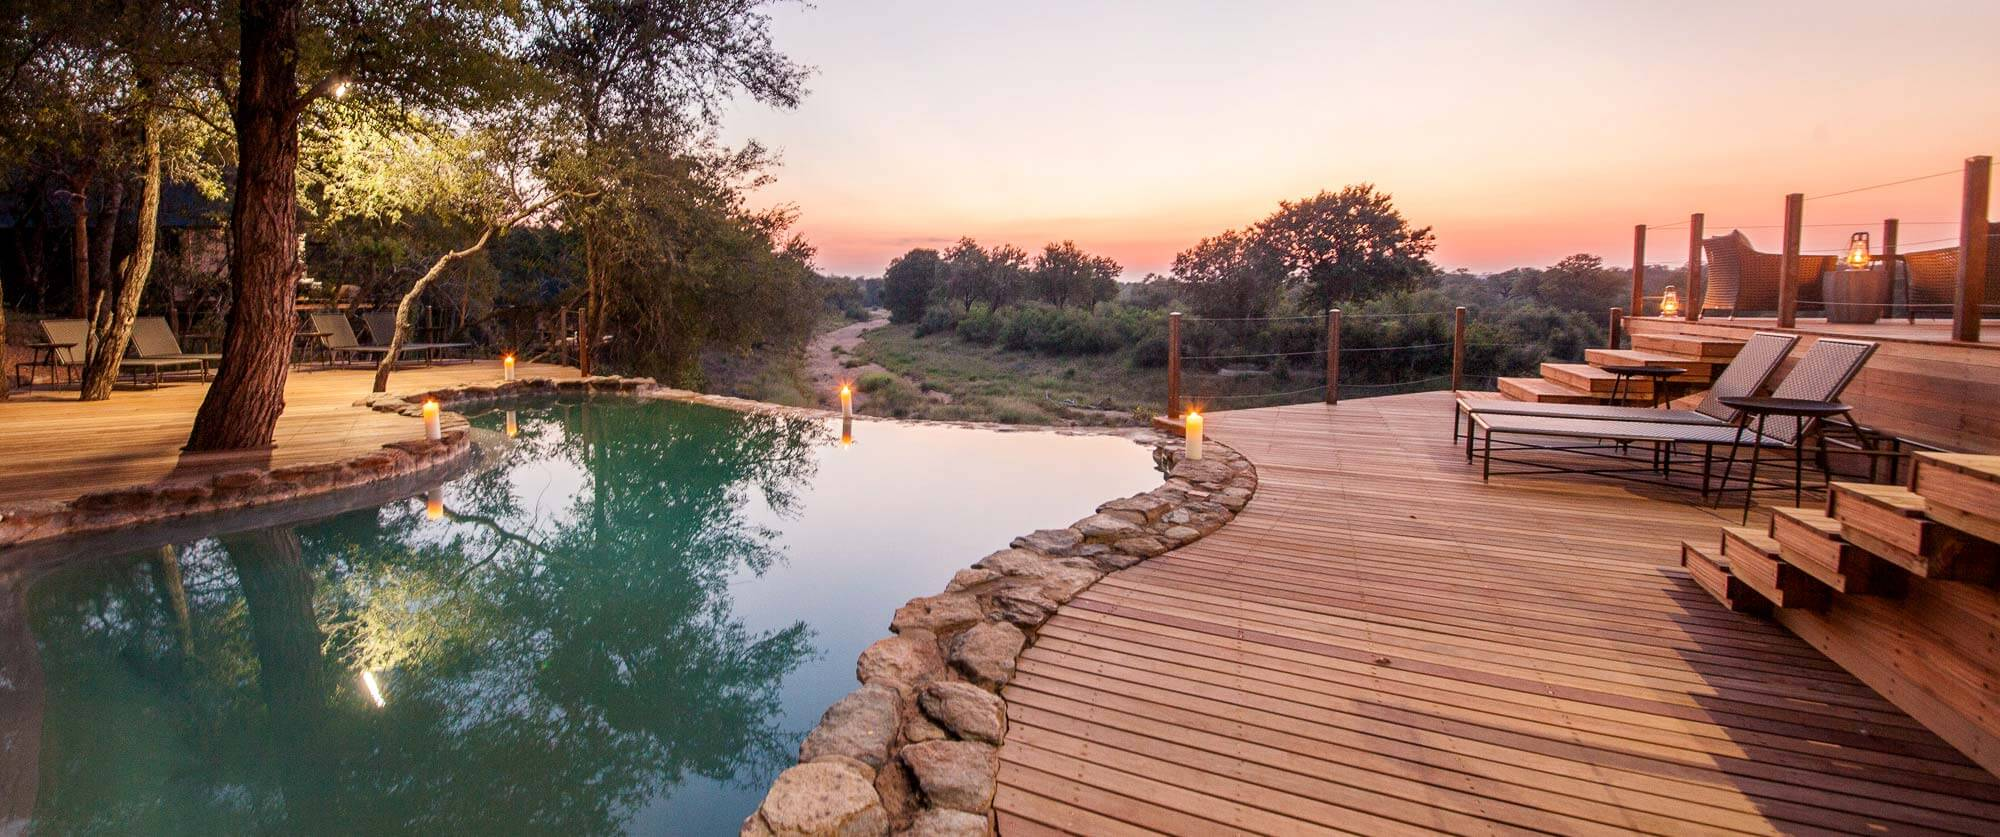 Garonga Safari Camp - Kruger Safari, City, and Winelands Vacation